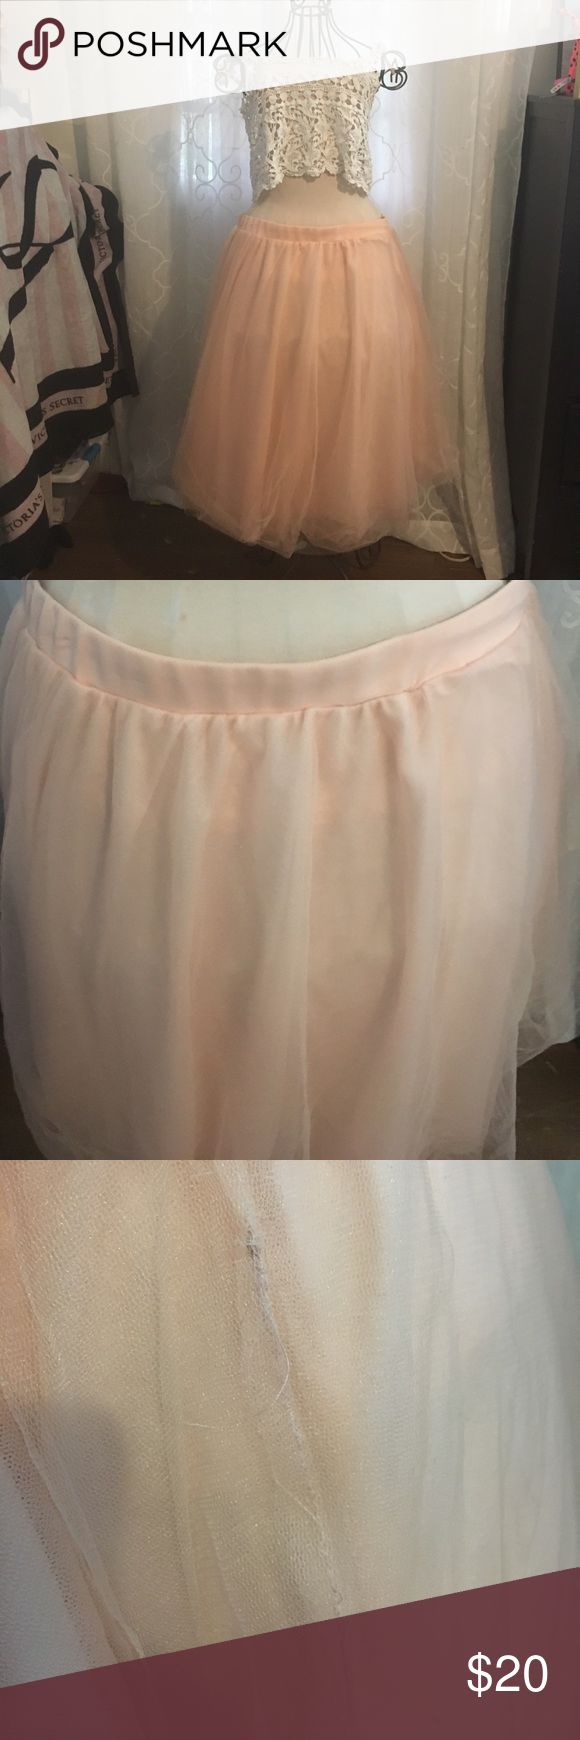 Pink tutu skirt 3x great for pictures and costume. Slight Frey in tutu material but unnoticed from far away never worn Charlotte Russe Skirts Circle & Skater